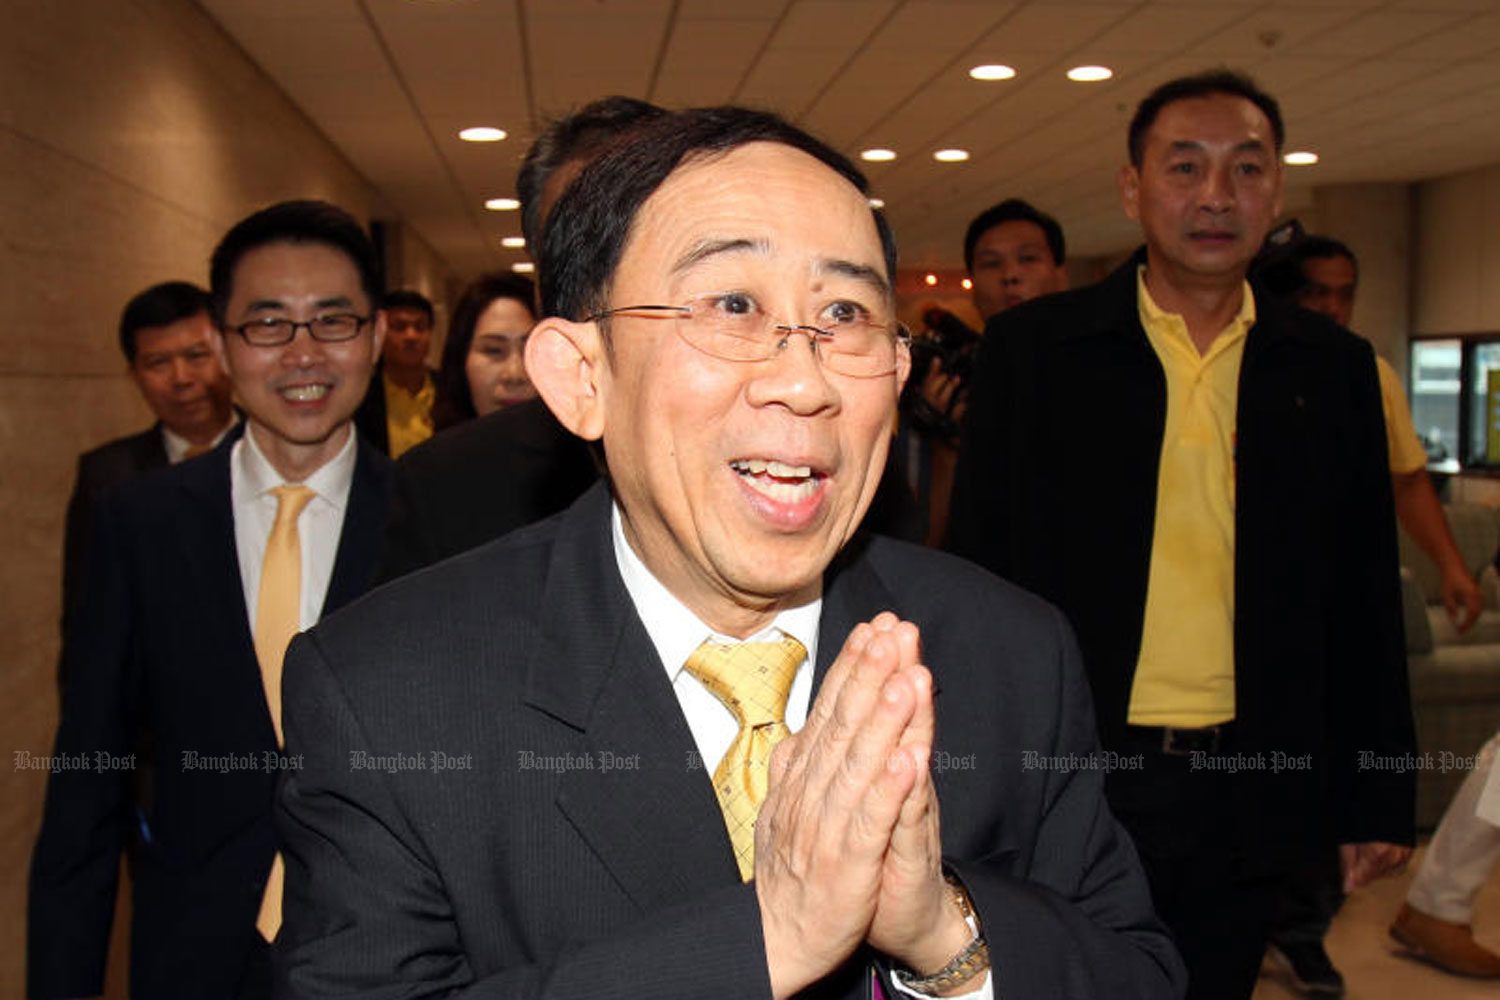 Mingkwan Sangsuwan, then New Economics Party leader, gives a wai when he led the MPs of his party to report themselves at a new Parliament building in Bangkok on May 13 after the Election Commission endorsed them. He resigned as party leader, effective on Thursday. (Photo by Tawatchai Kemgumnerd)